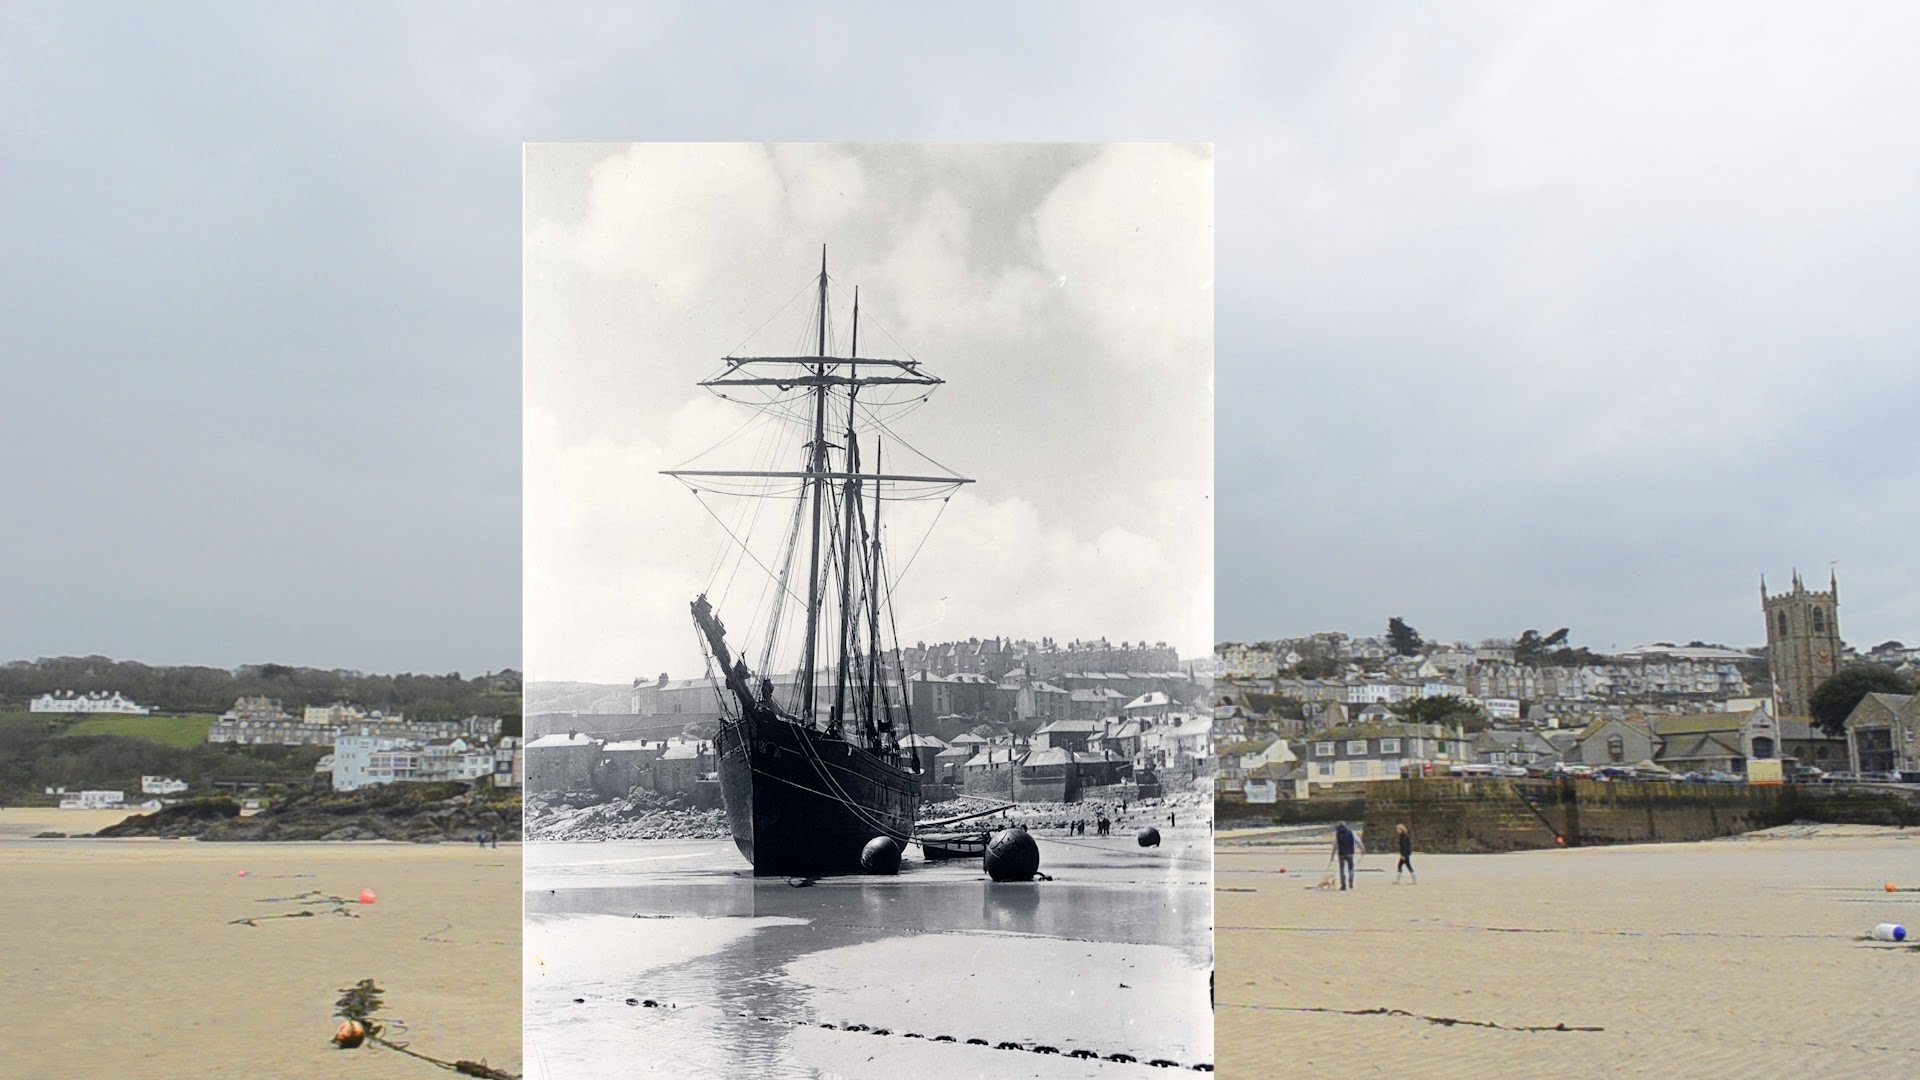 St Ives - Memories from a Bygone Era